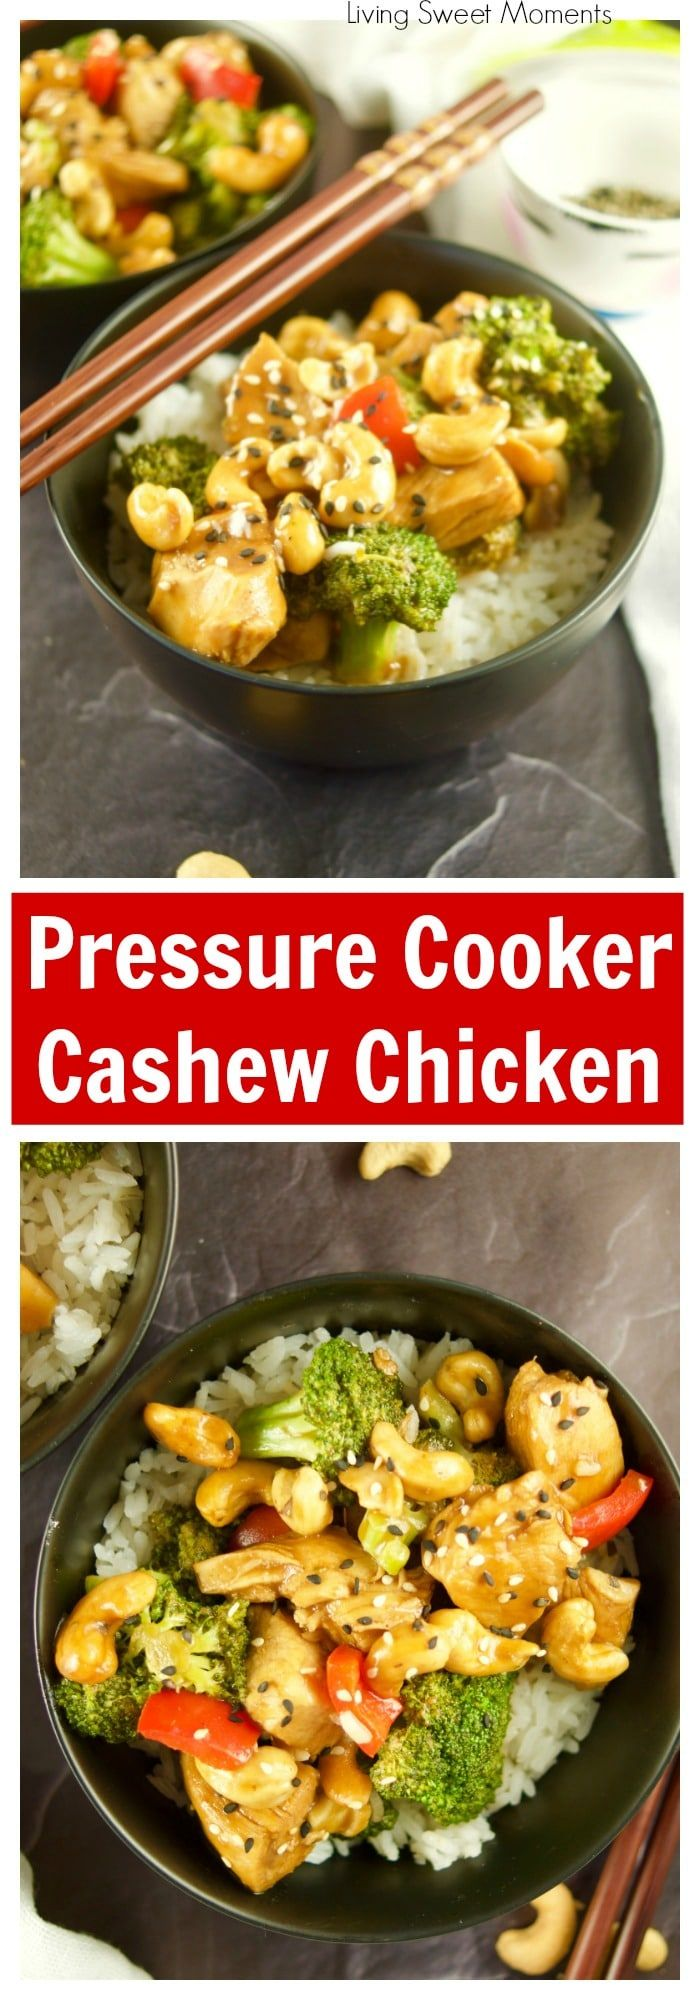 This Quick And Easy Pressure Cooker Cashew Chicken Recipe Is Ready In 20 Minutes Or Less And Chicken Recipes Cashew Chicken Recipe Easy Chicken Dinner Recipes